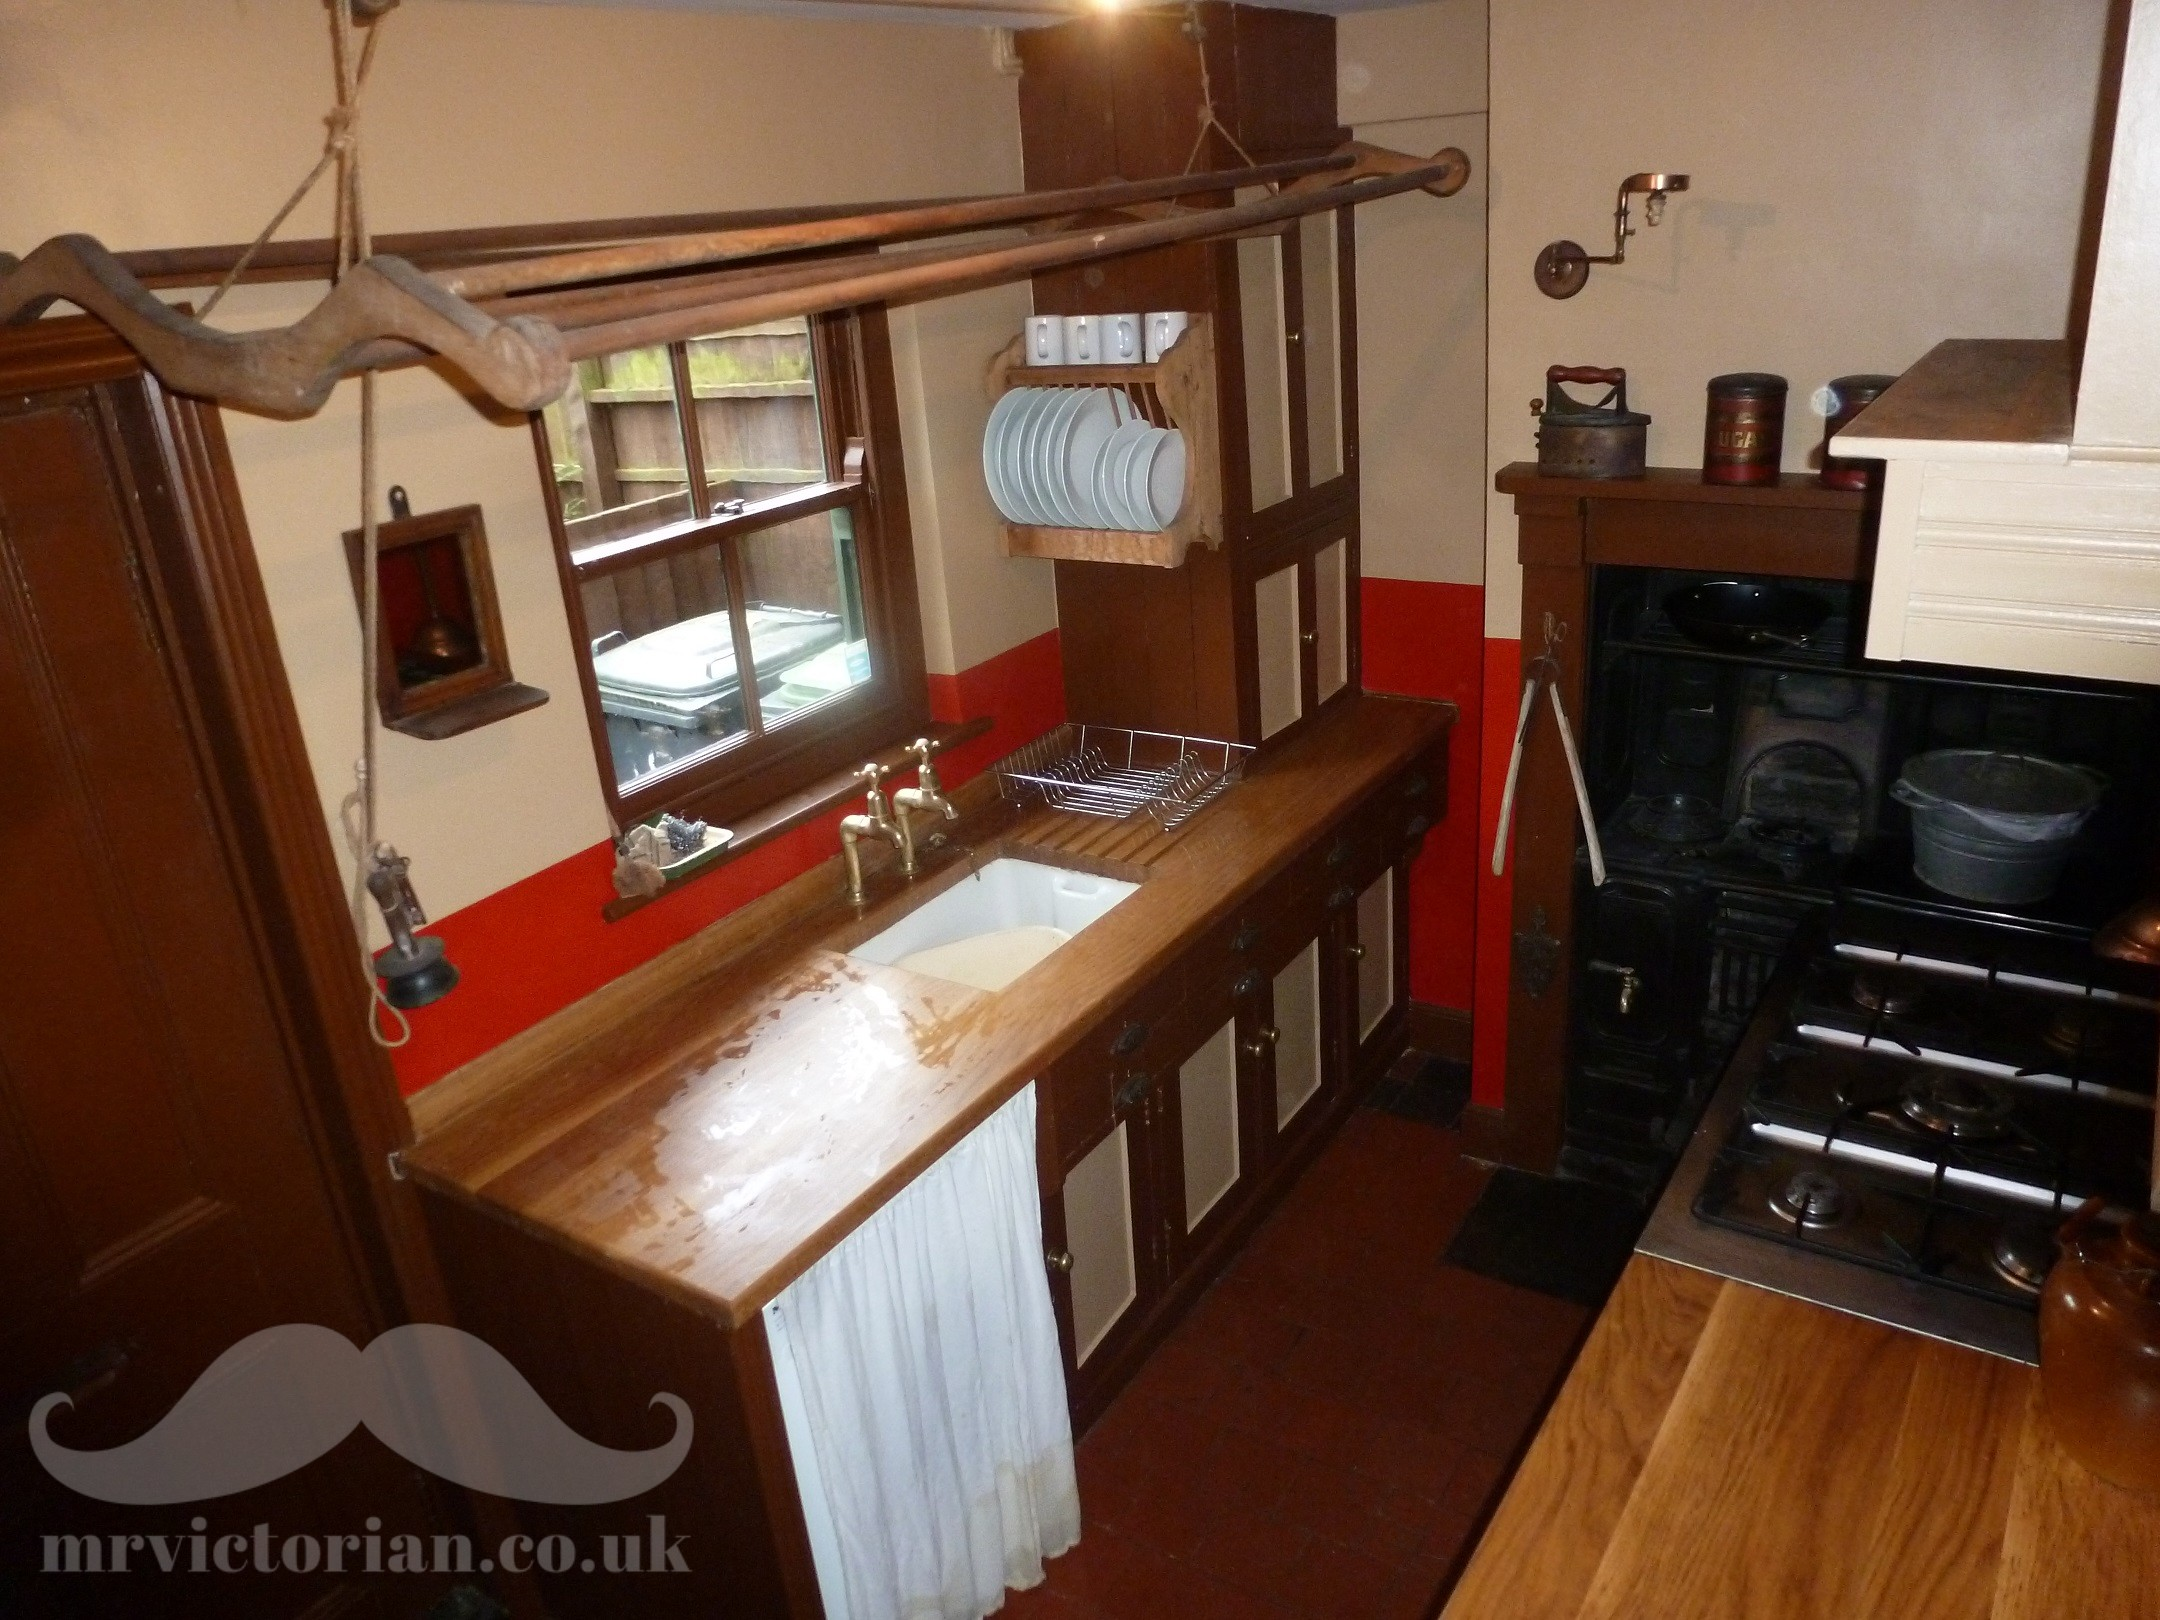 Victorian house tour scullery with 1920 colour scheme. Visit www.mrvictorian.co.uk